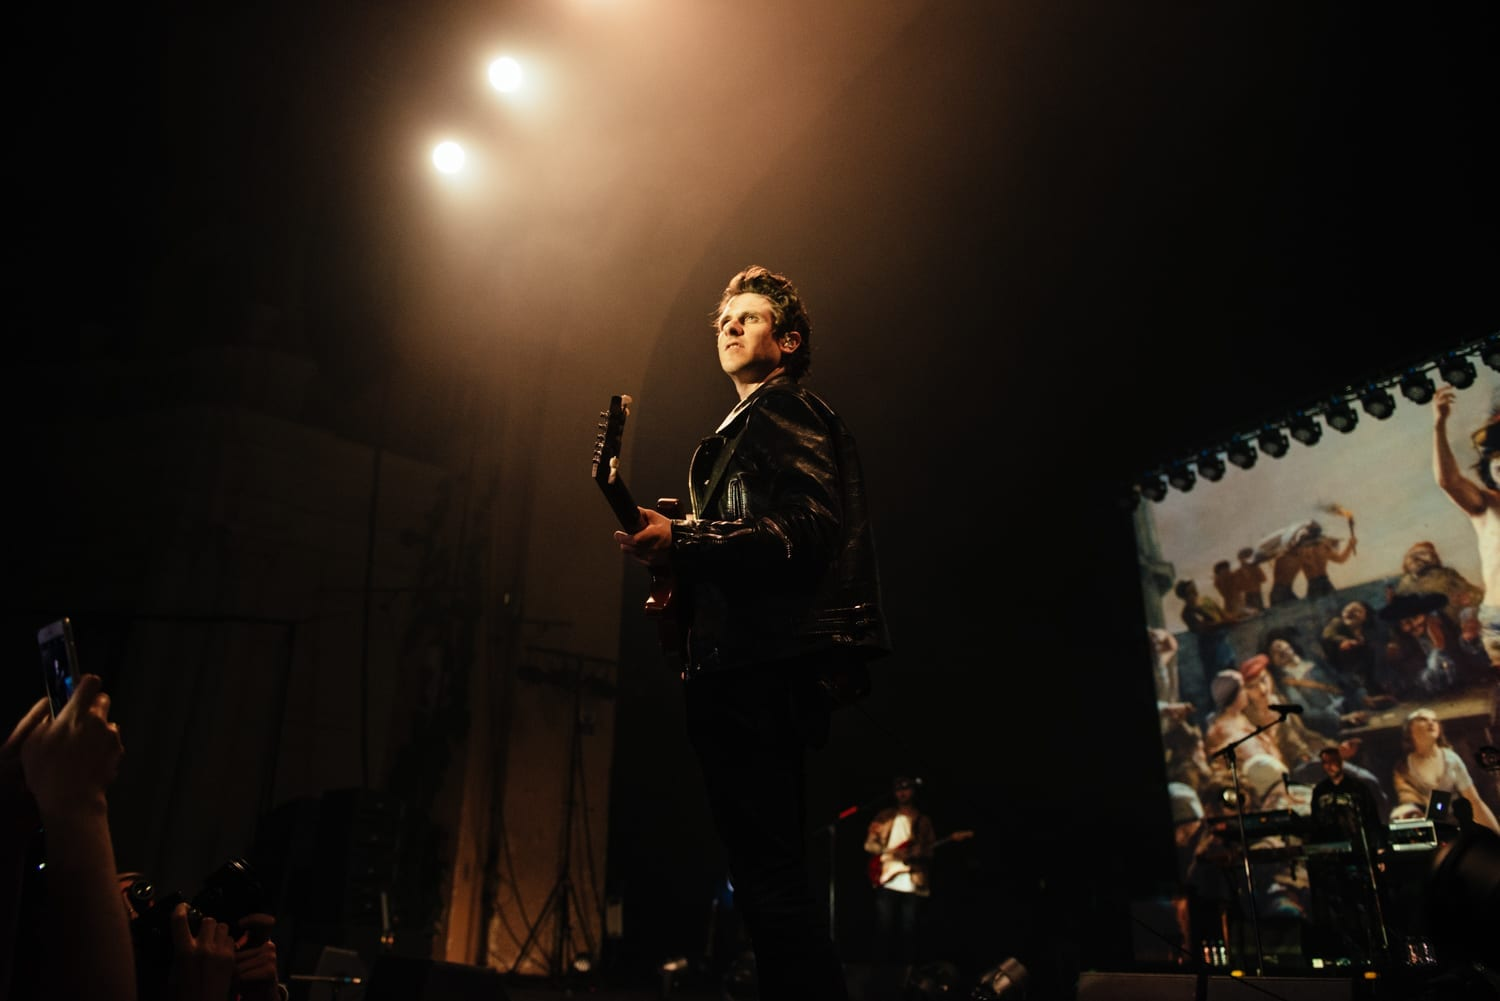 Check out our pictures from Jamie T's Brixton show here.